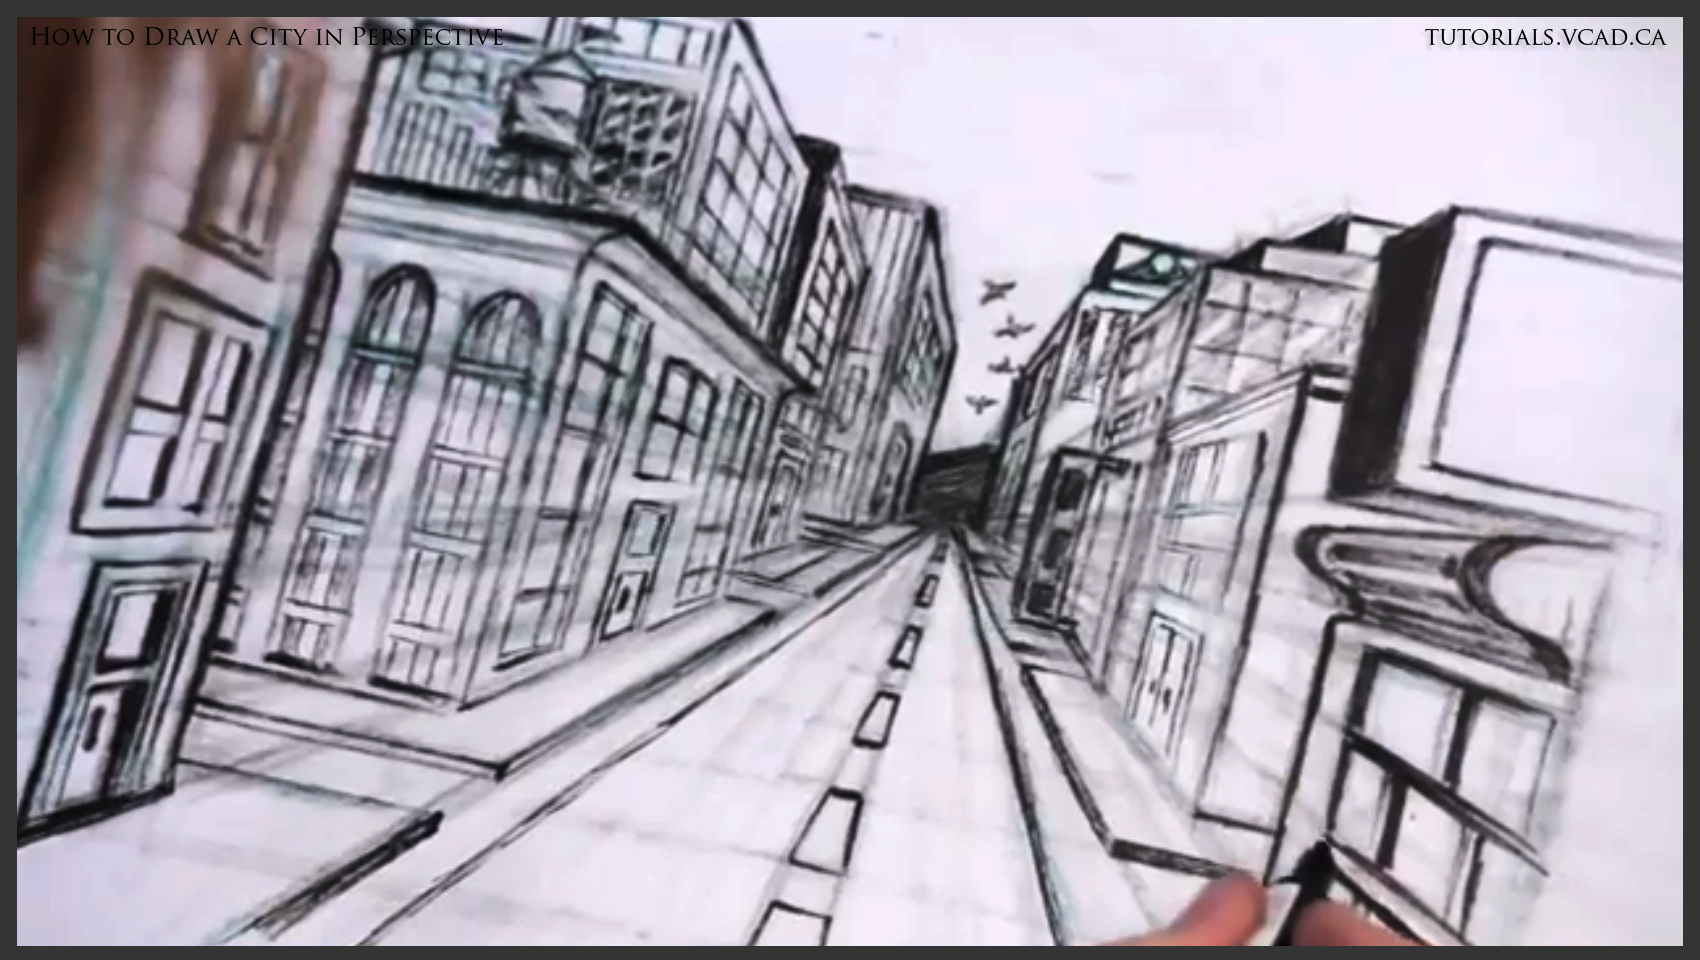 Drawn bulding  vanishing point Point to a city to